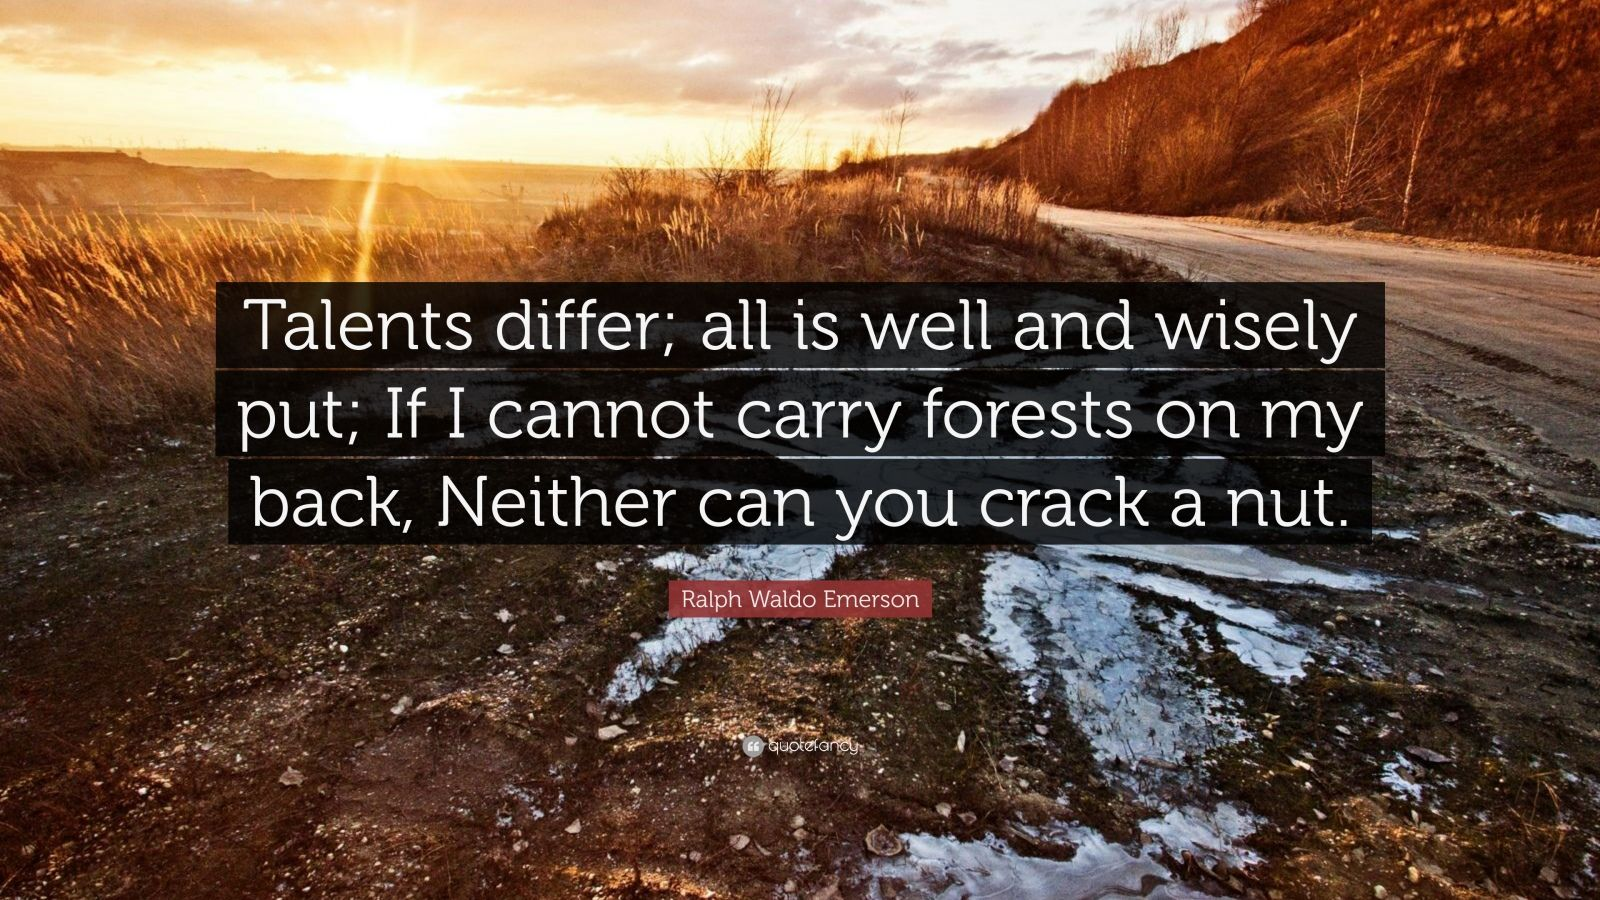 """Ralph Waldo Emerson Quote: """"Talents differ; all is well and wisely put; If I cannot carry forests on my back, Neither can you crack a nut."""""""